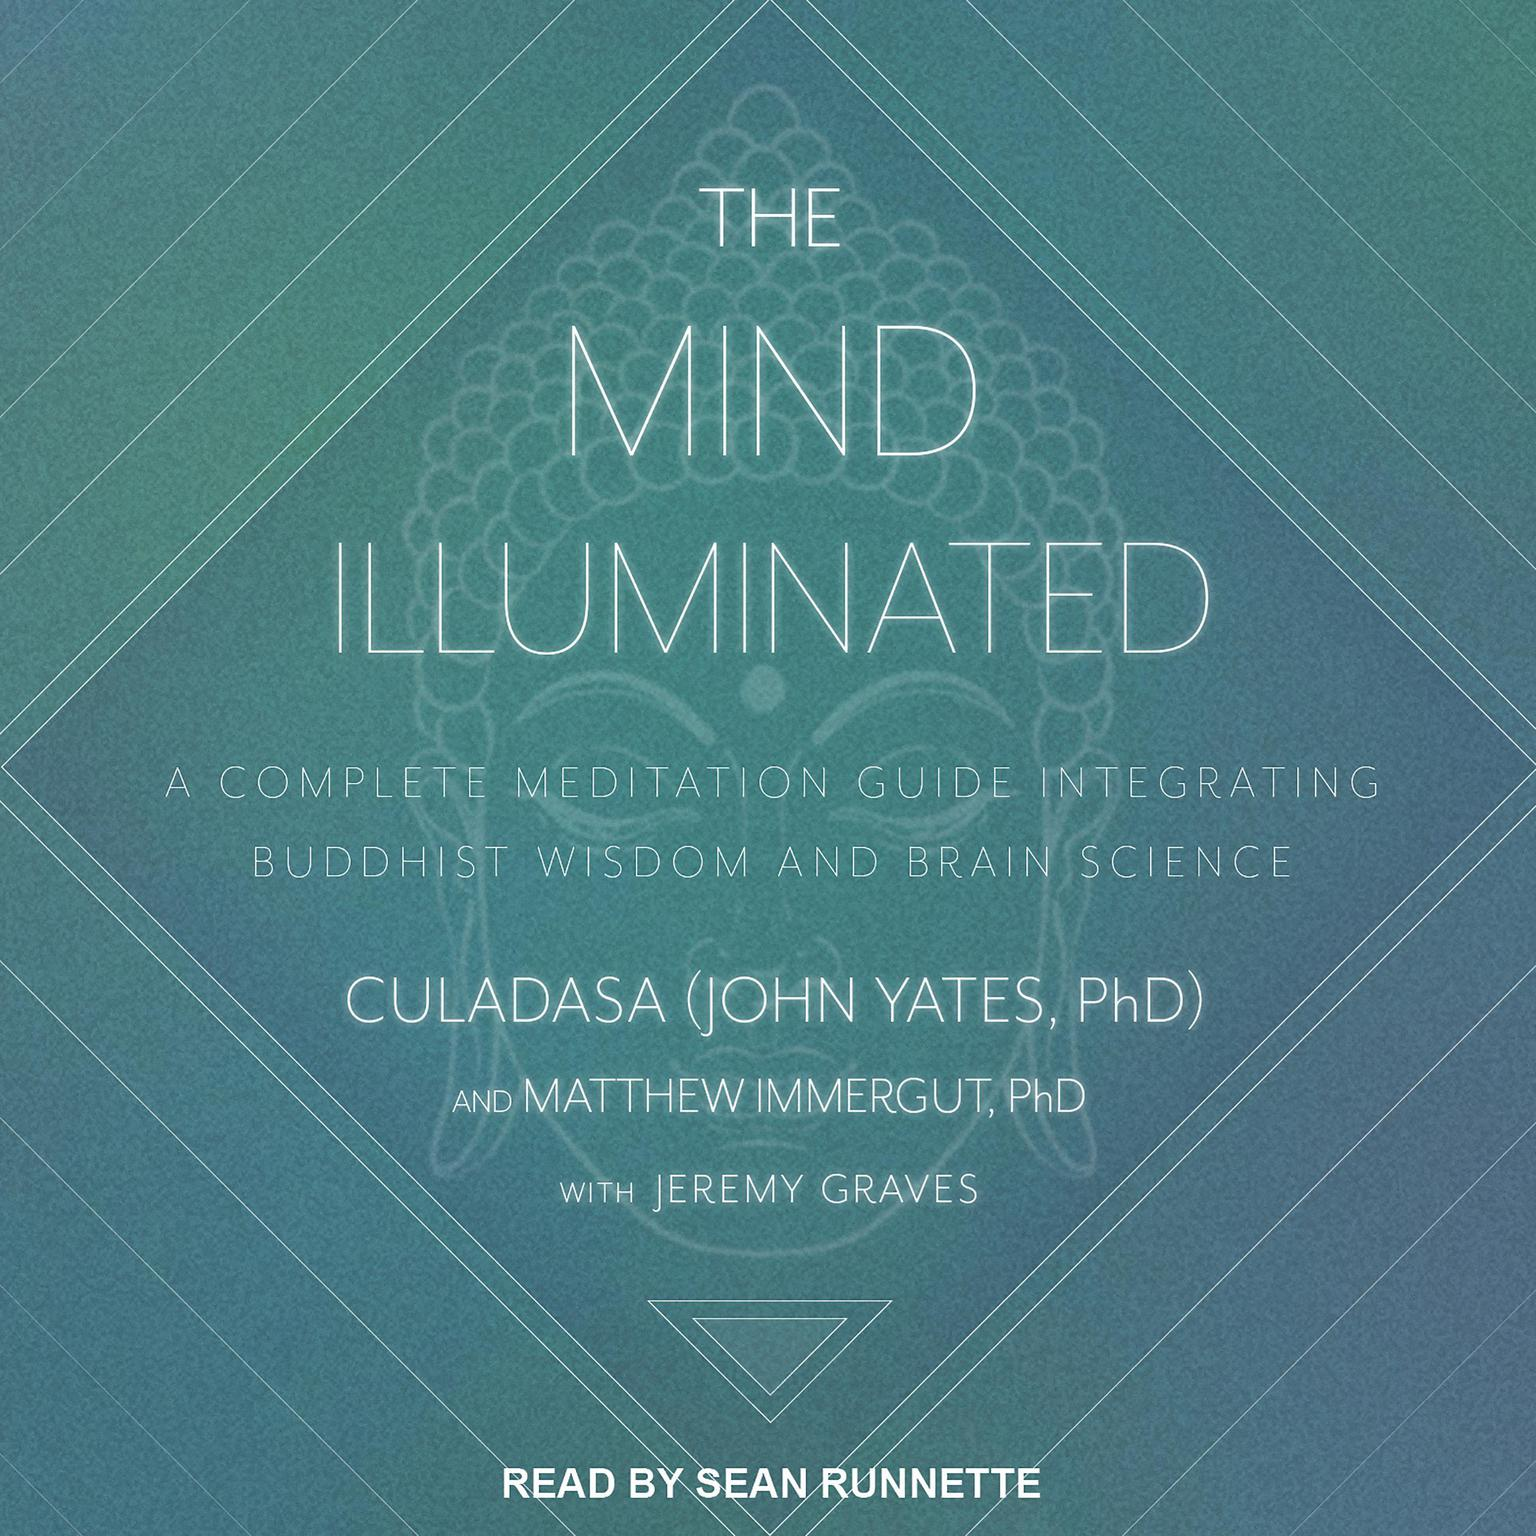 The Mind Illuminated: A Complete Meditation Guide Integrating Buddhist Wisdom and Brain Science Audiobook, by Culadasa John Yates